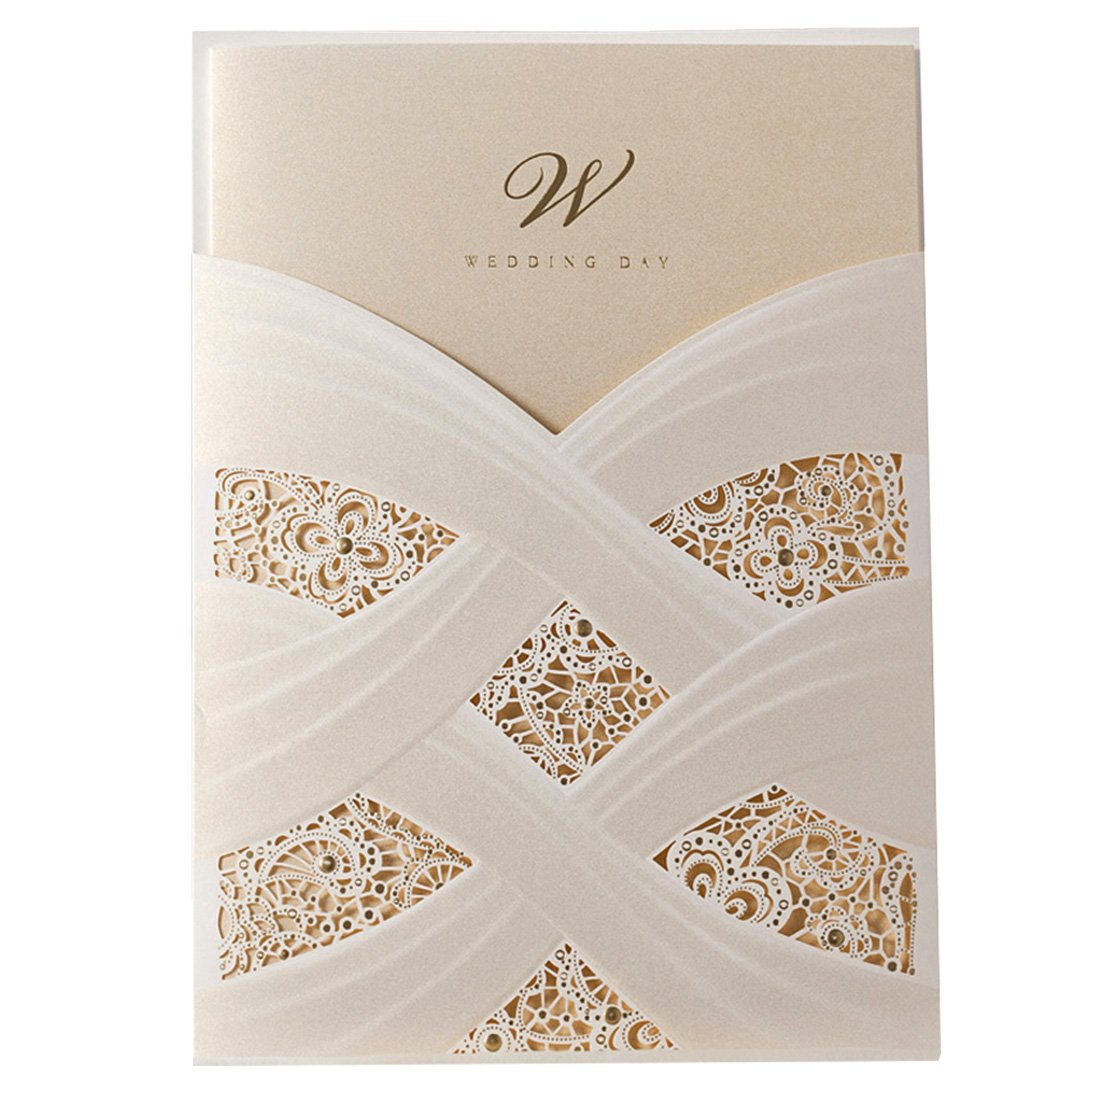 Wishmade 50pcs Ivory Laser Cut Wedding Invitations Cards kit With Lace Sleeve Flower Pocket Design Cardstock for Bridal Shower (pack of 50pcs) FCW060